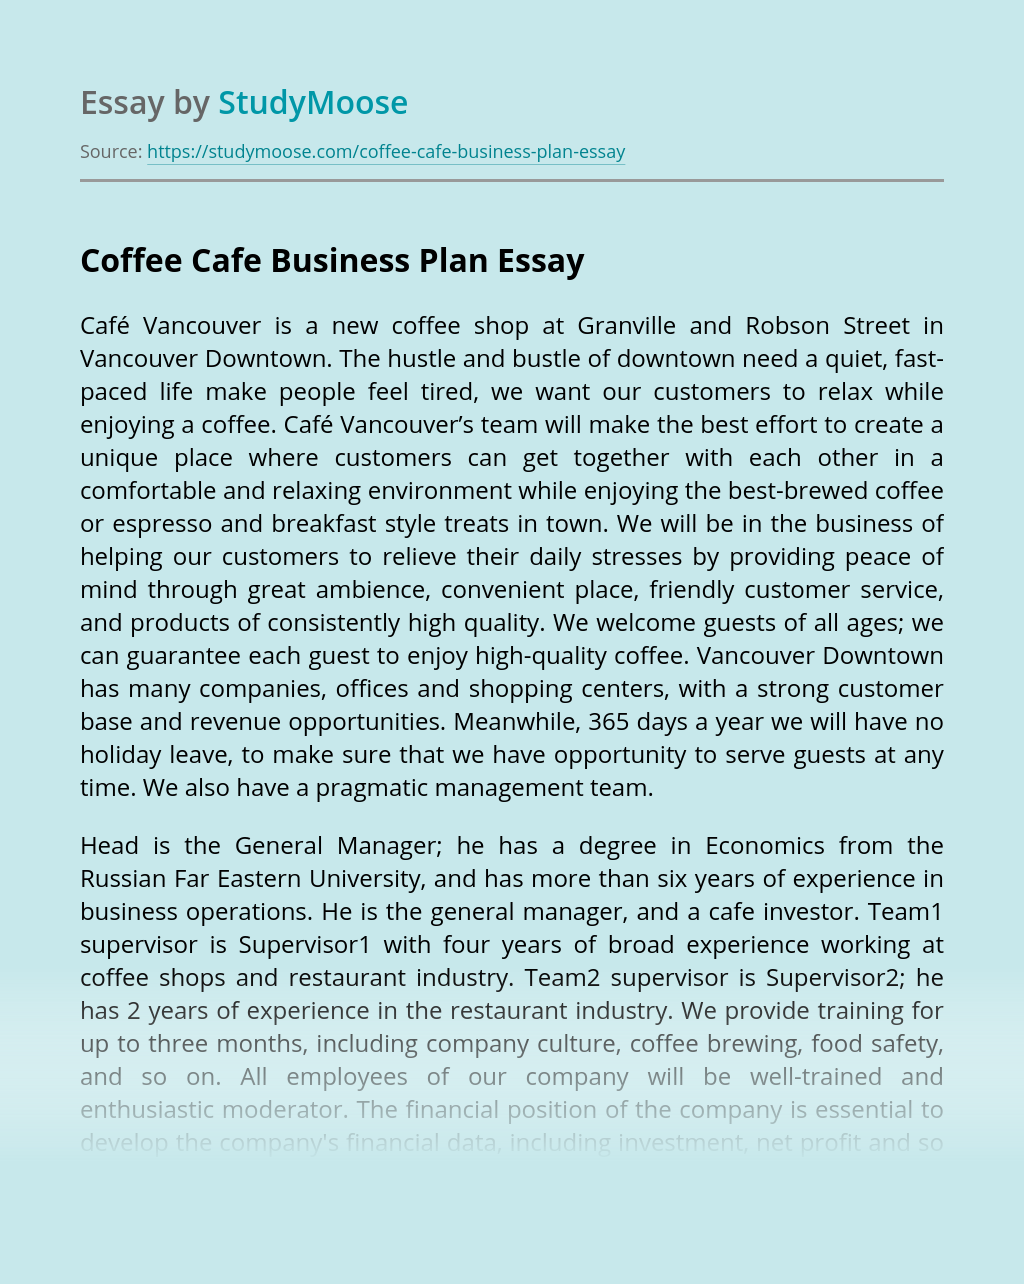 Coffee Cafe Business Plan